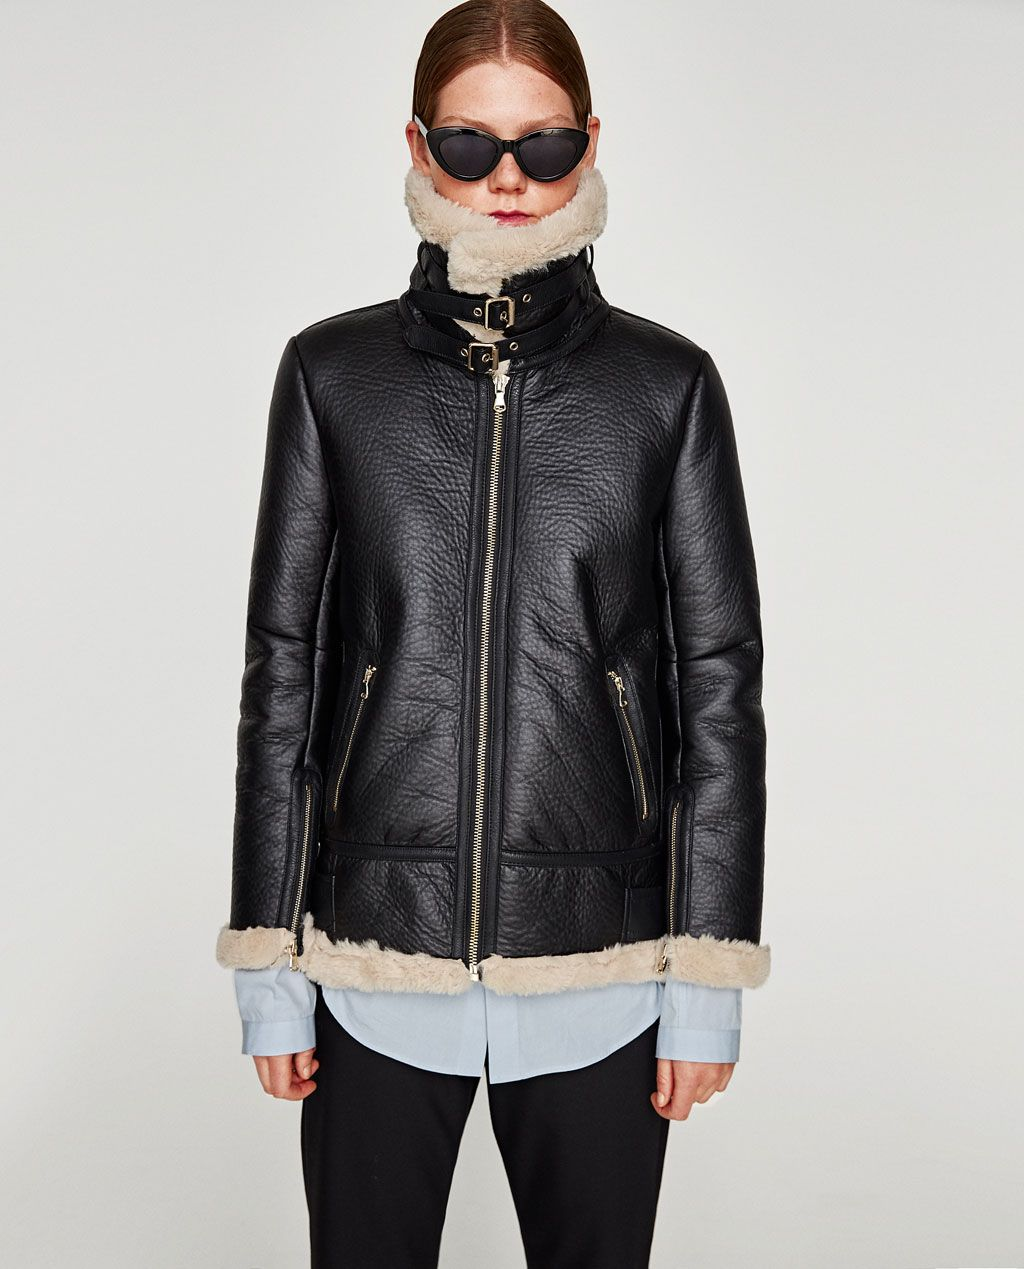 7d164ba0f81bf AVIATOR JACKET from Zara